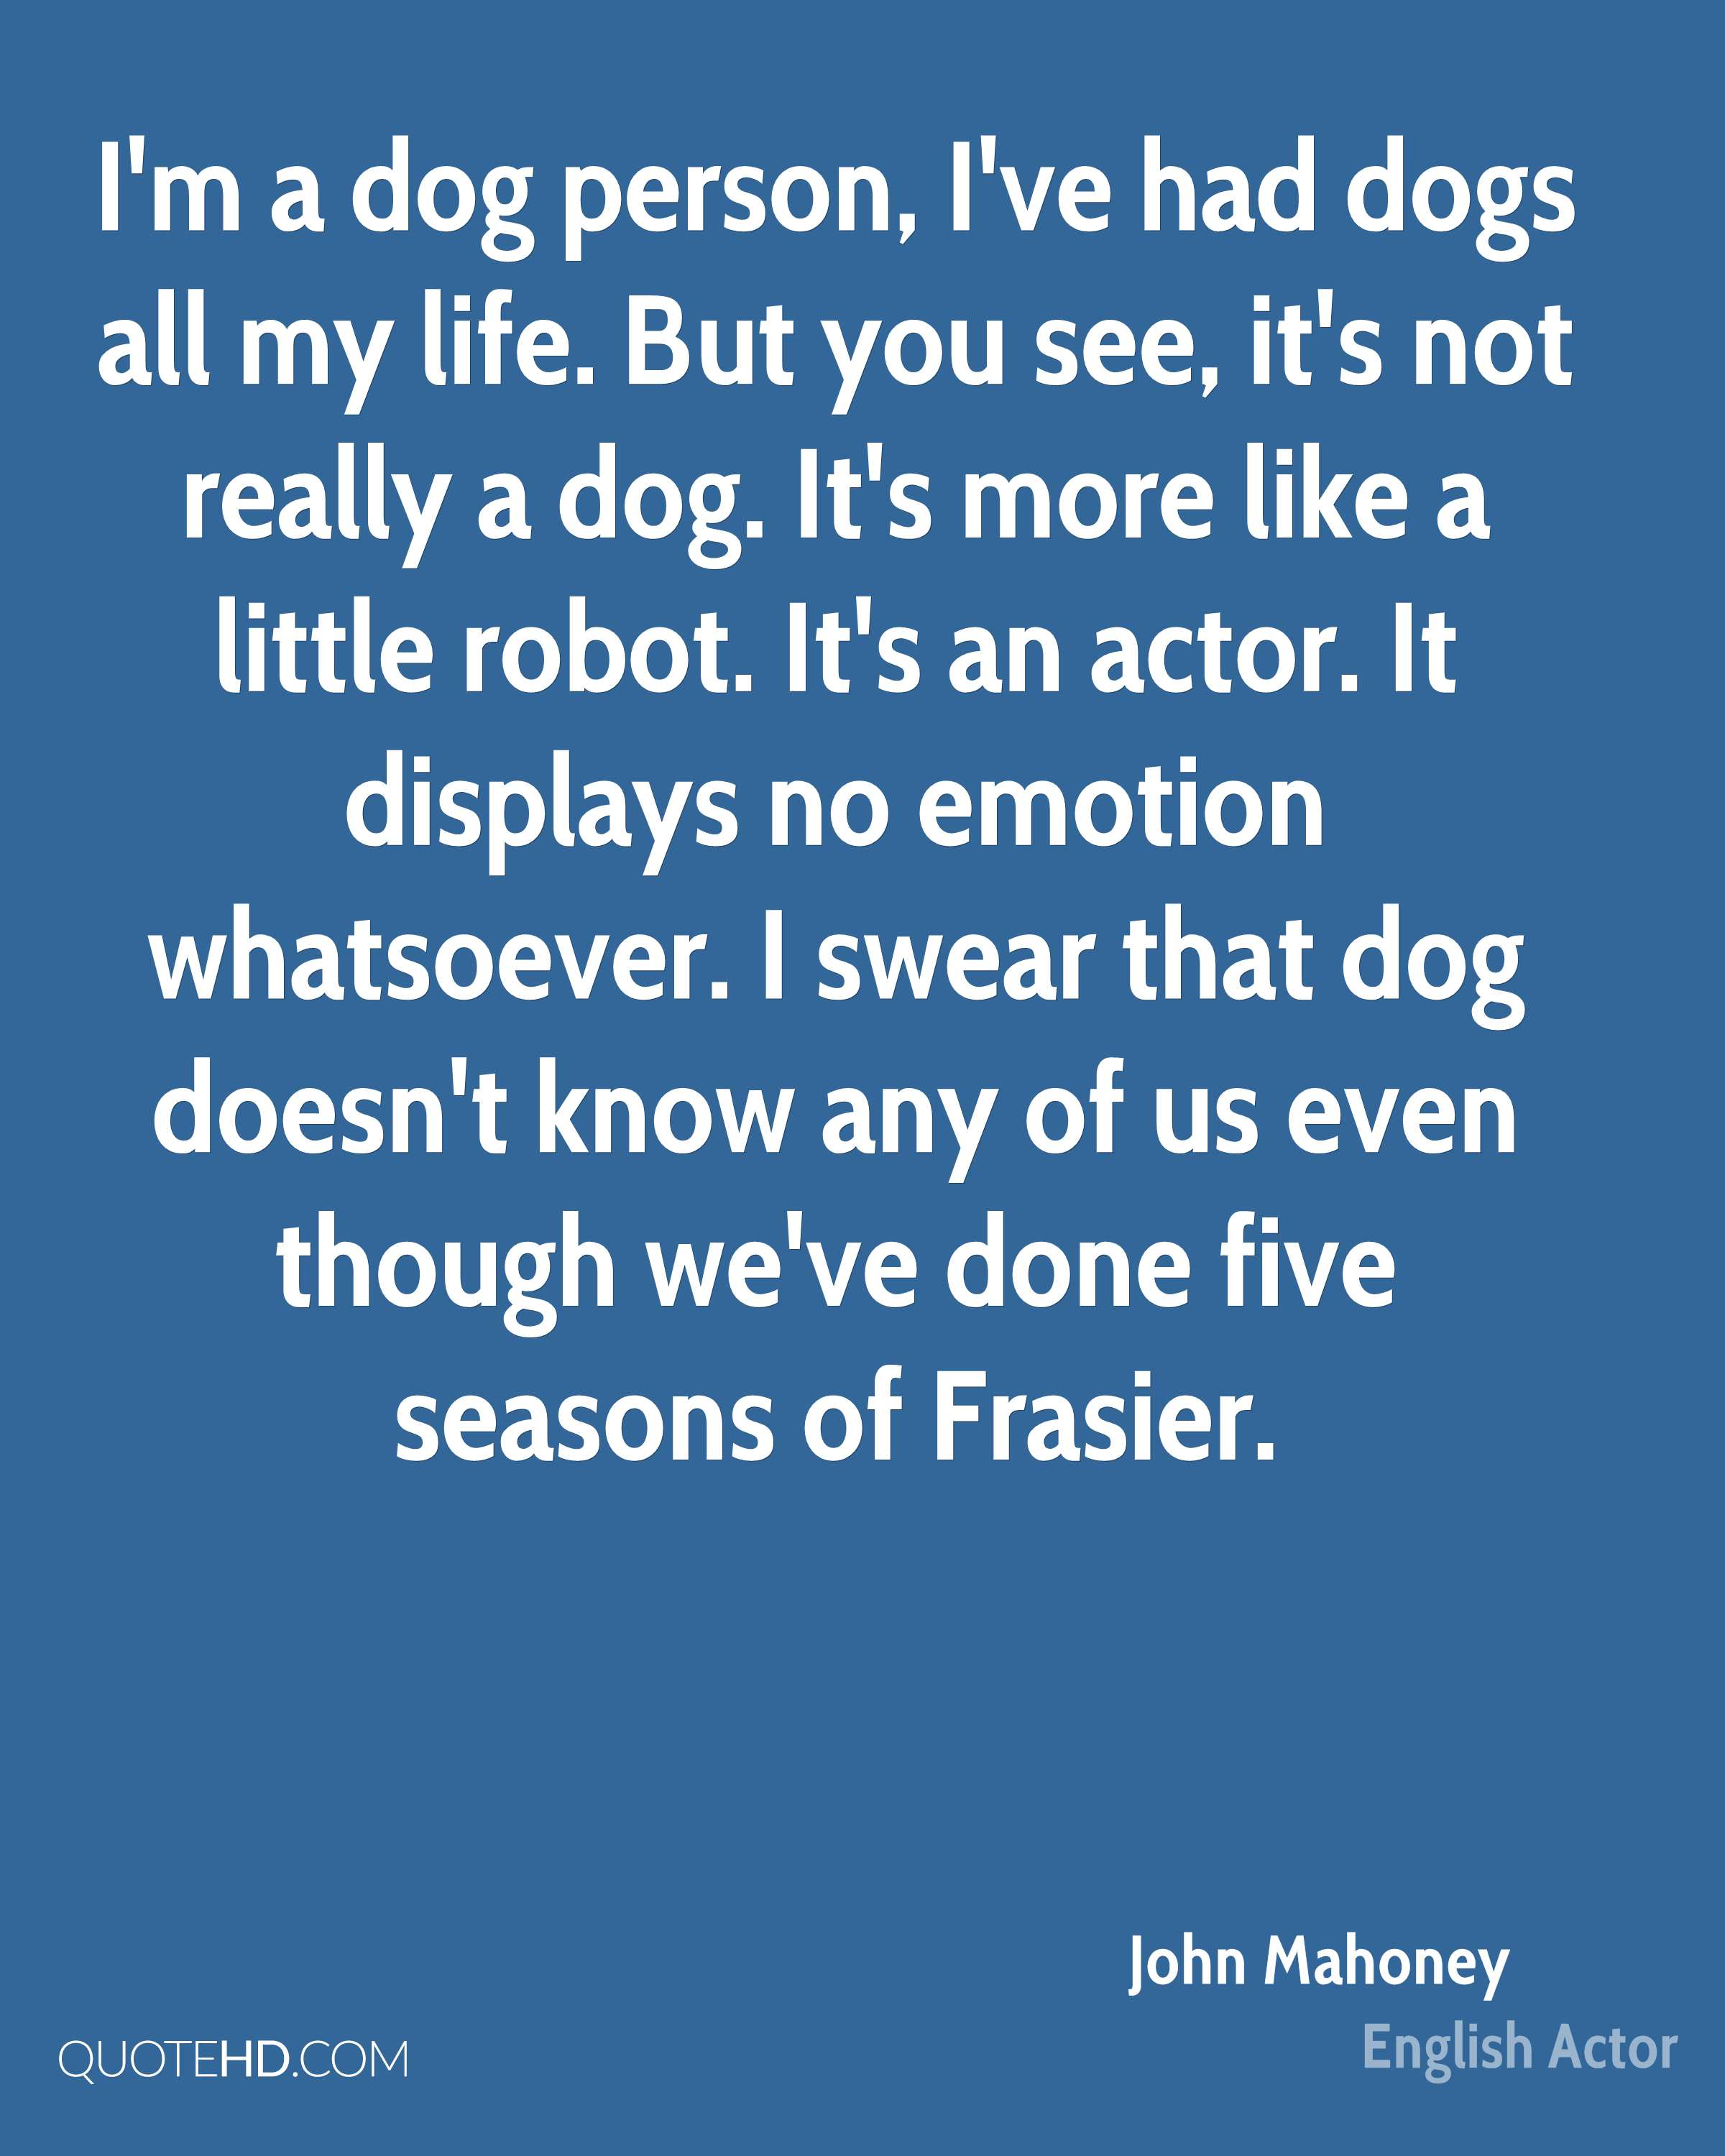 I'm a dog person, I've had dogs all my life. But you see, it's not really a dog. It's more like a little robot. It's an actor. It displays no emotion whatsoever. I swear that dog doesn't know any of us even though we've done five seasons of Frasier.